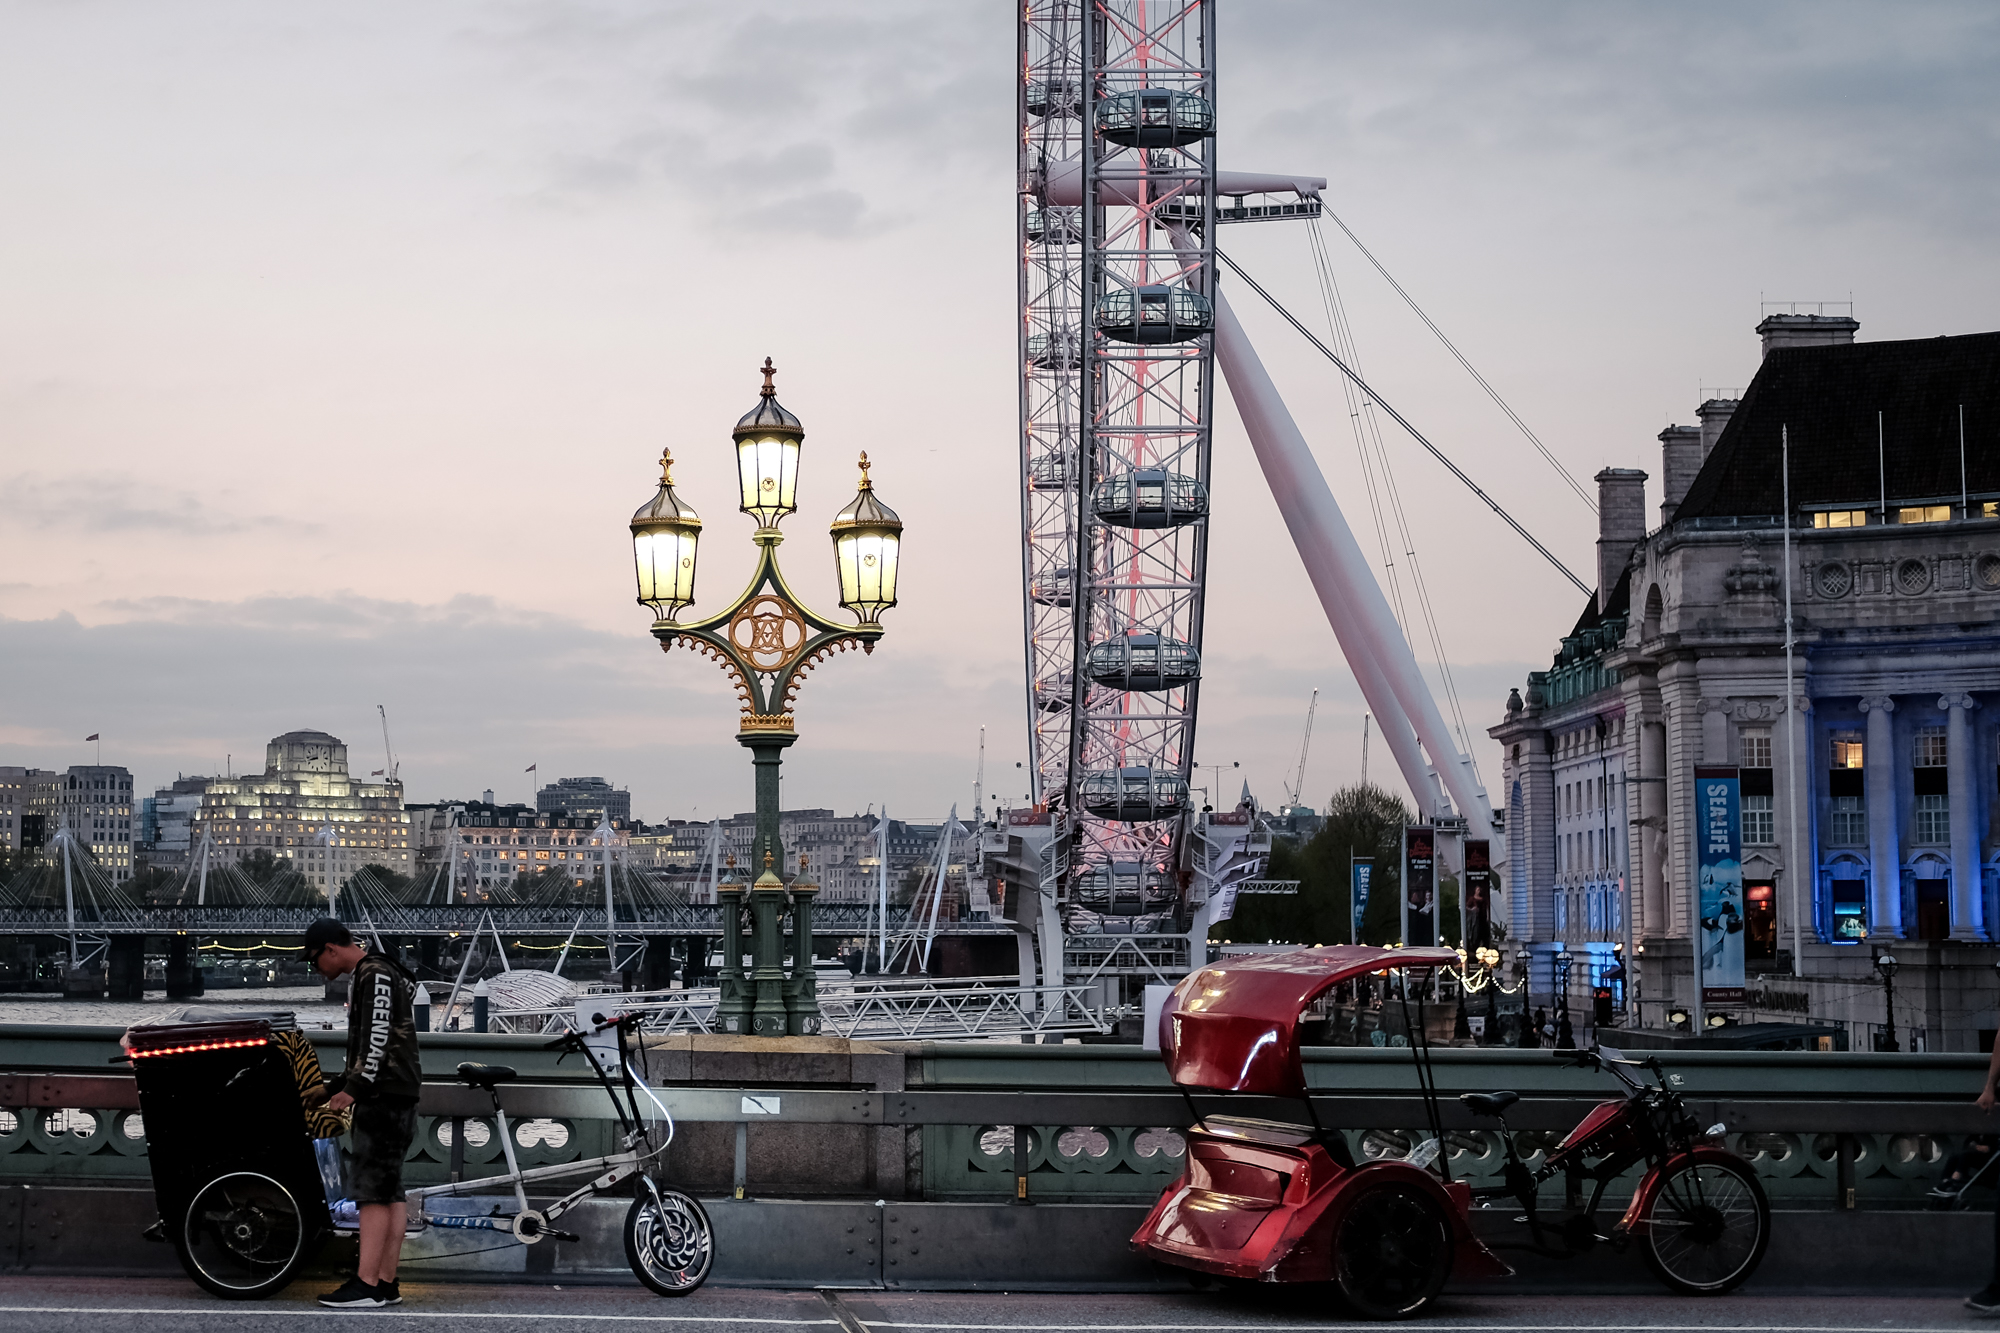 London Chrome photo of Westminster Bridge and the London Eye by Trevor Sherwin